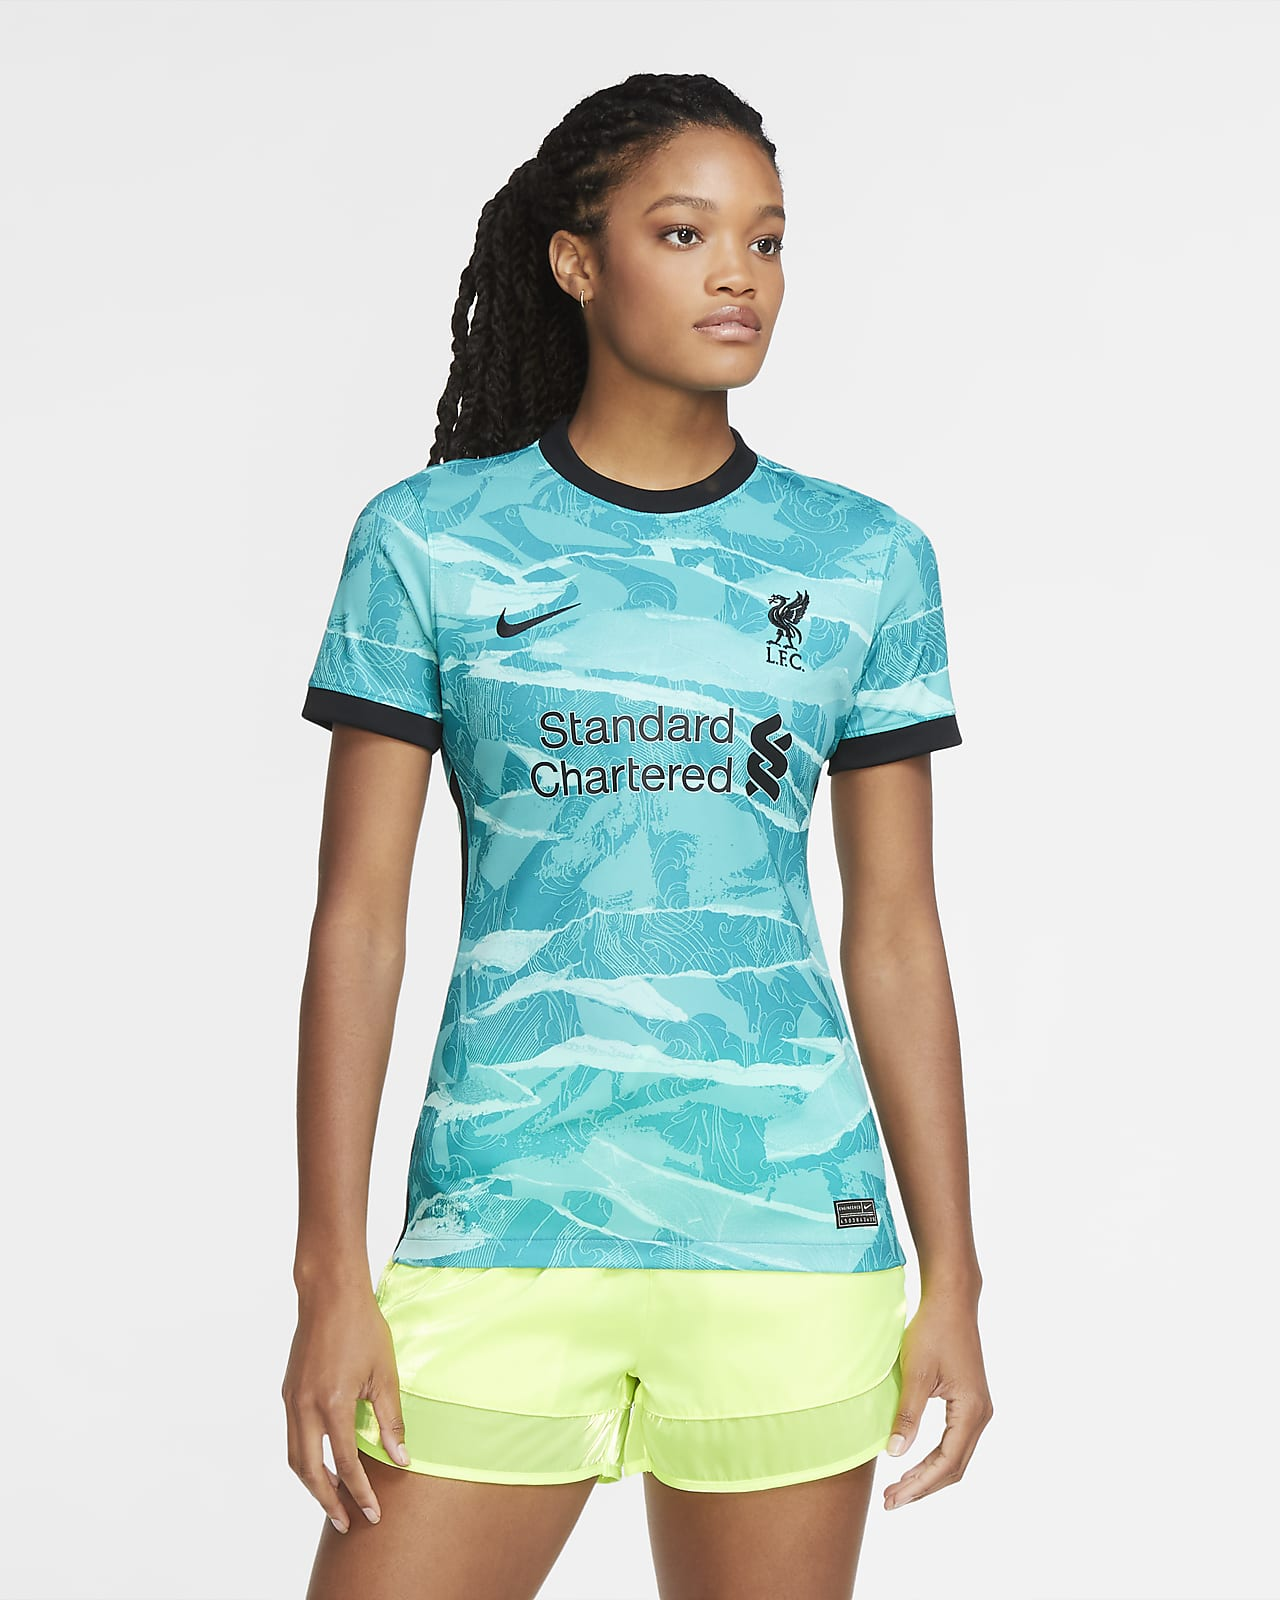 Liverpool away youth soccer uniform